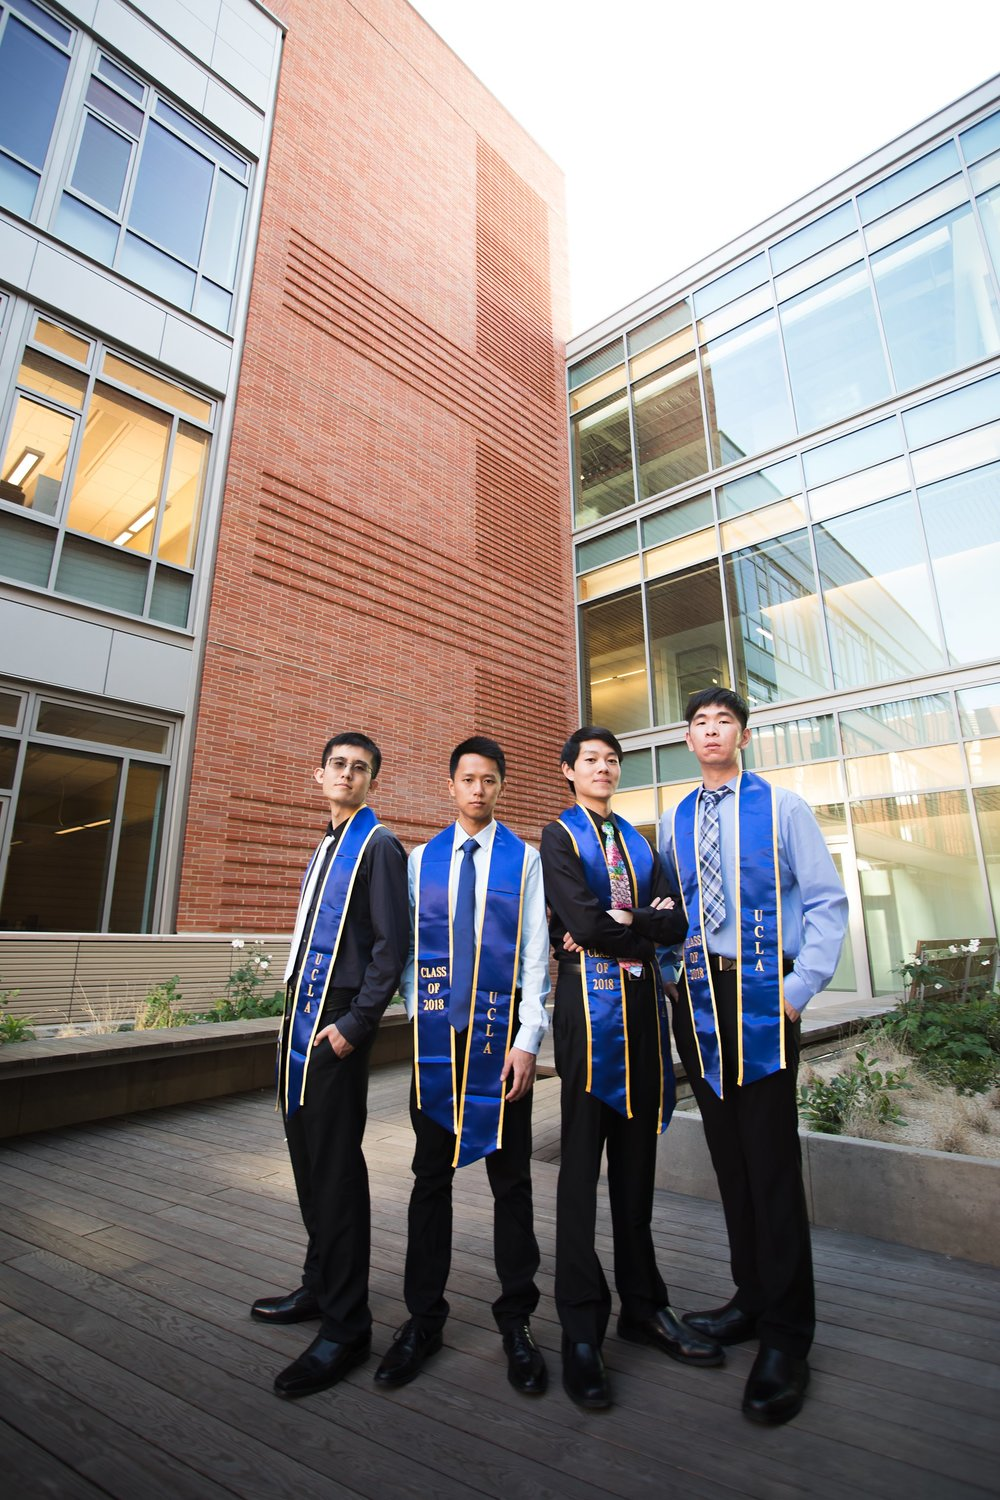 los-angeles-ucla-senior-graduation-portraits-epic-environmental-wide-angle-serious-guys